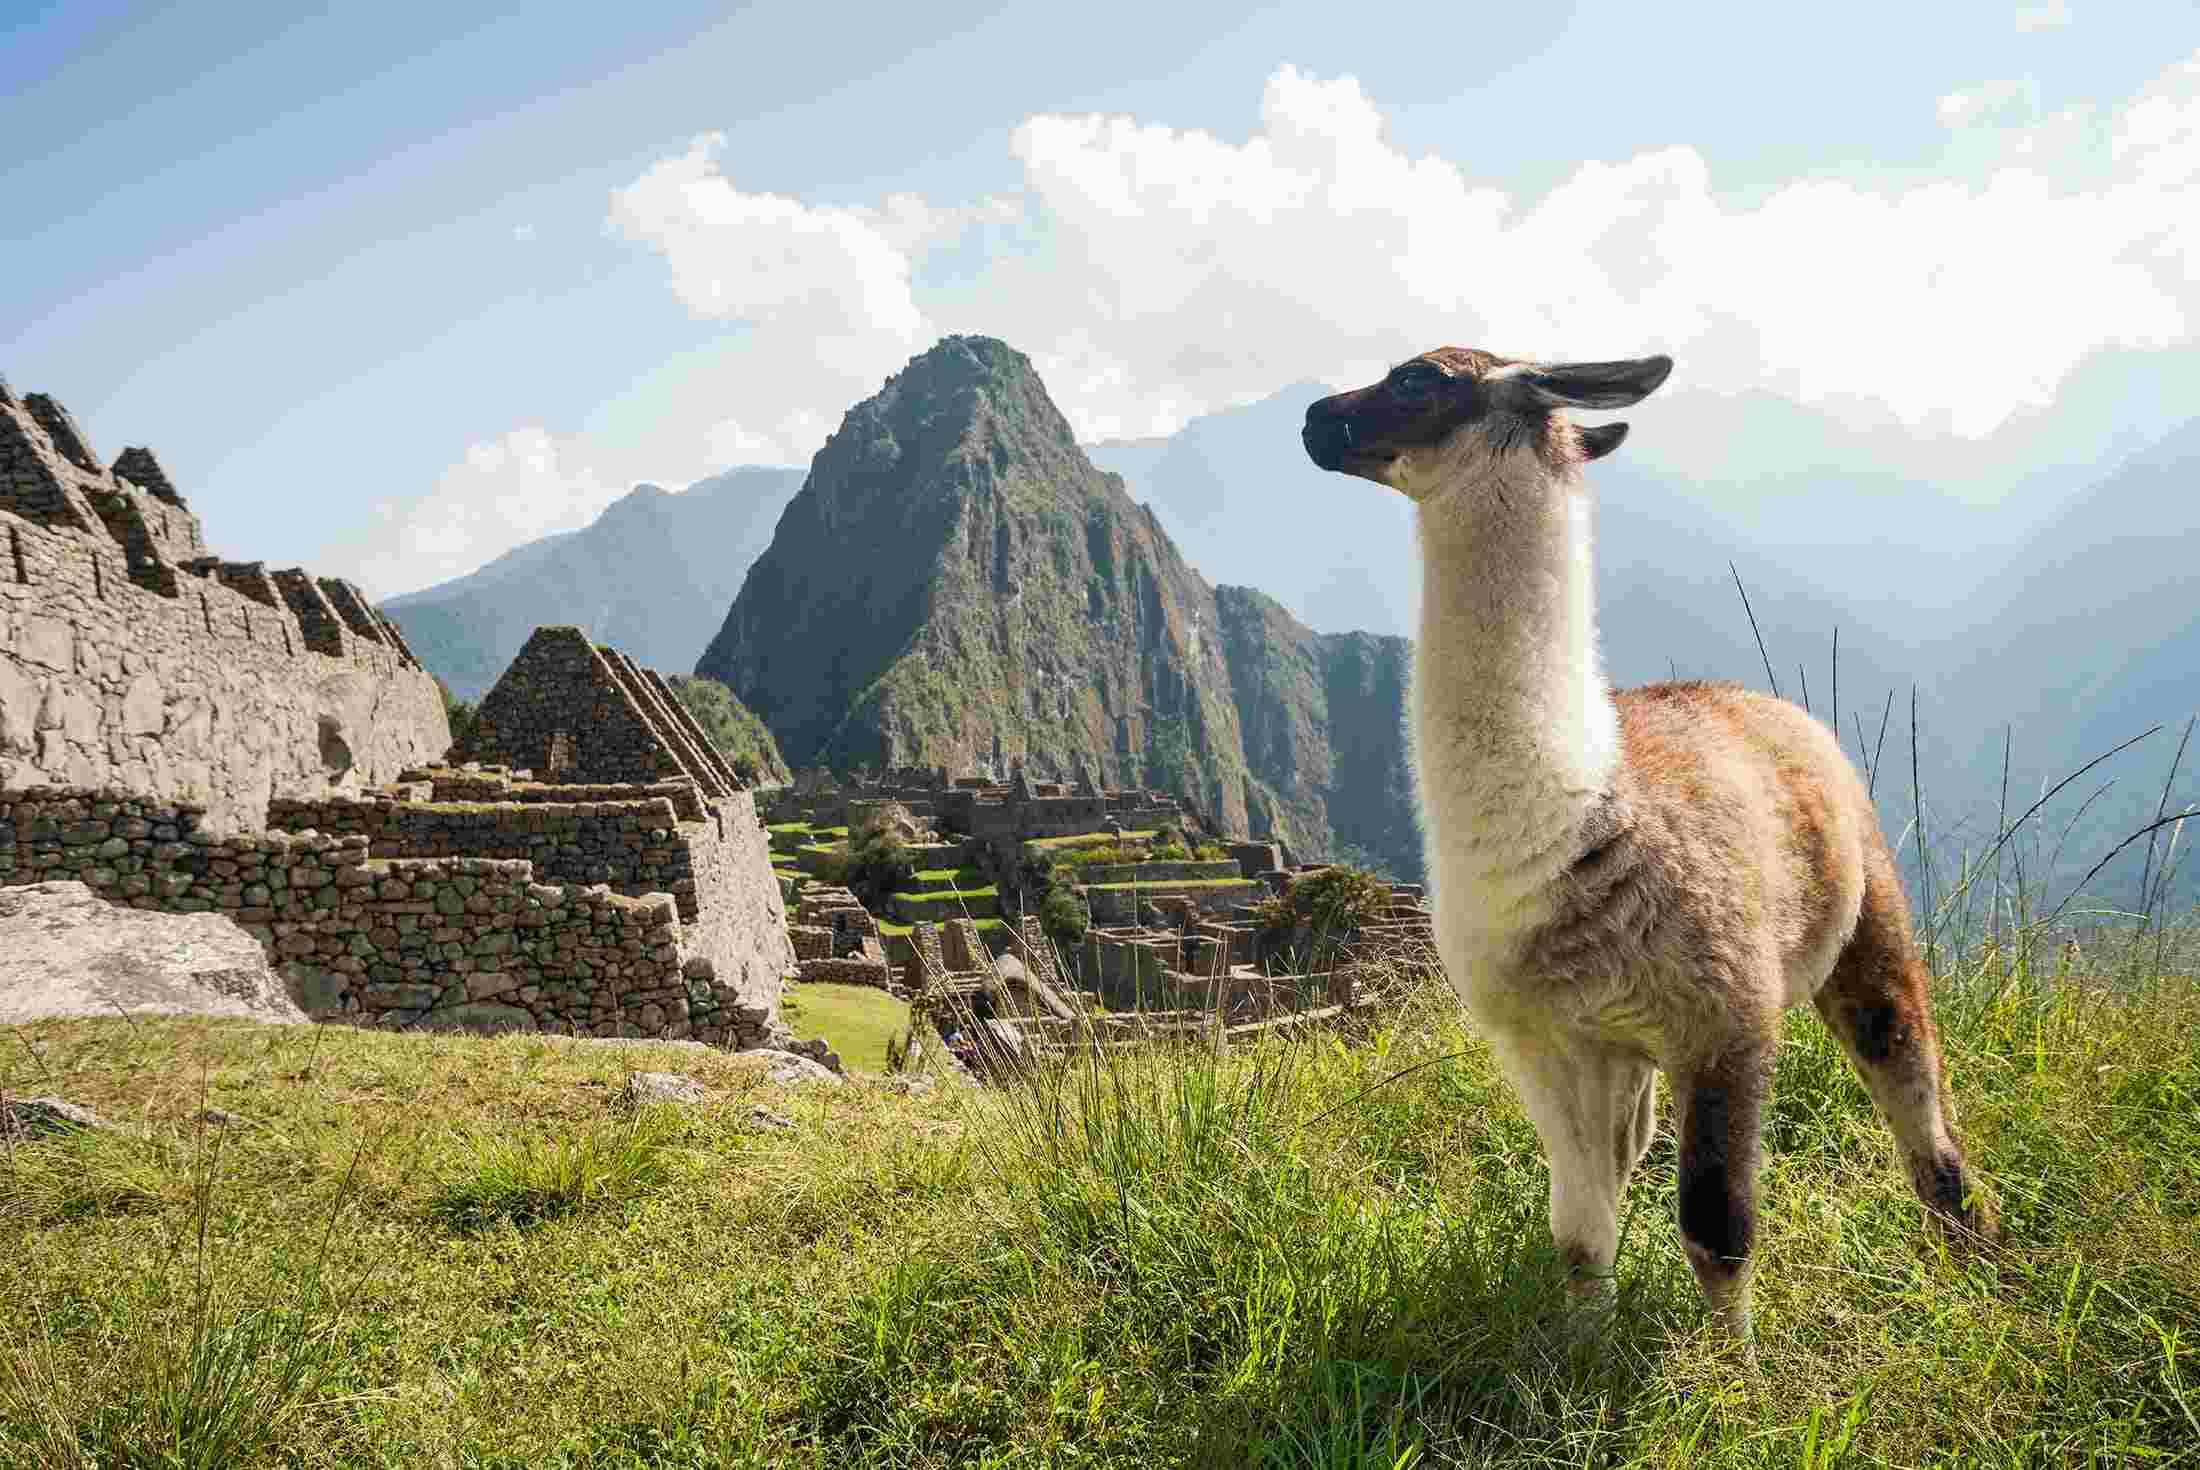 Top 10 Machu Picchu Tours & Trips 2018/19 | Geckos Adventures US